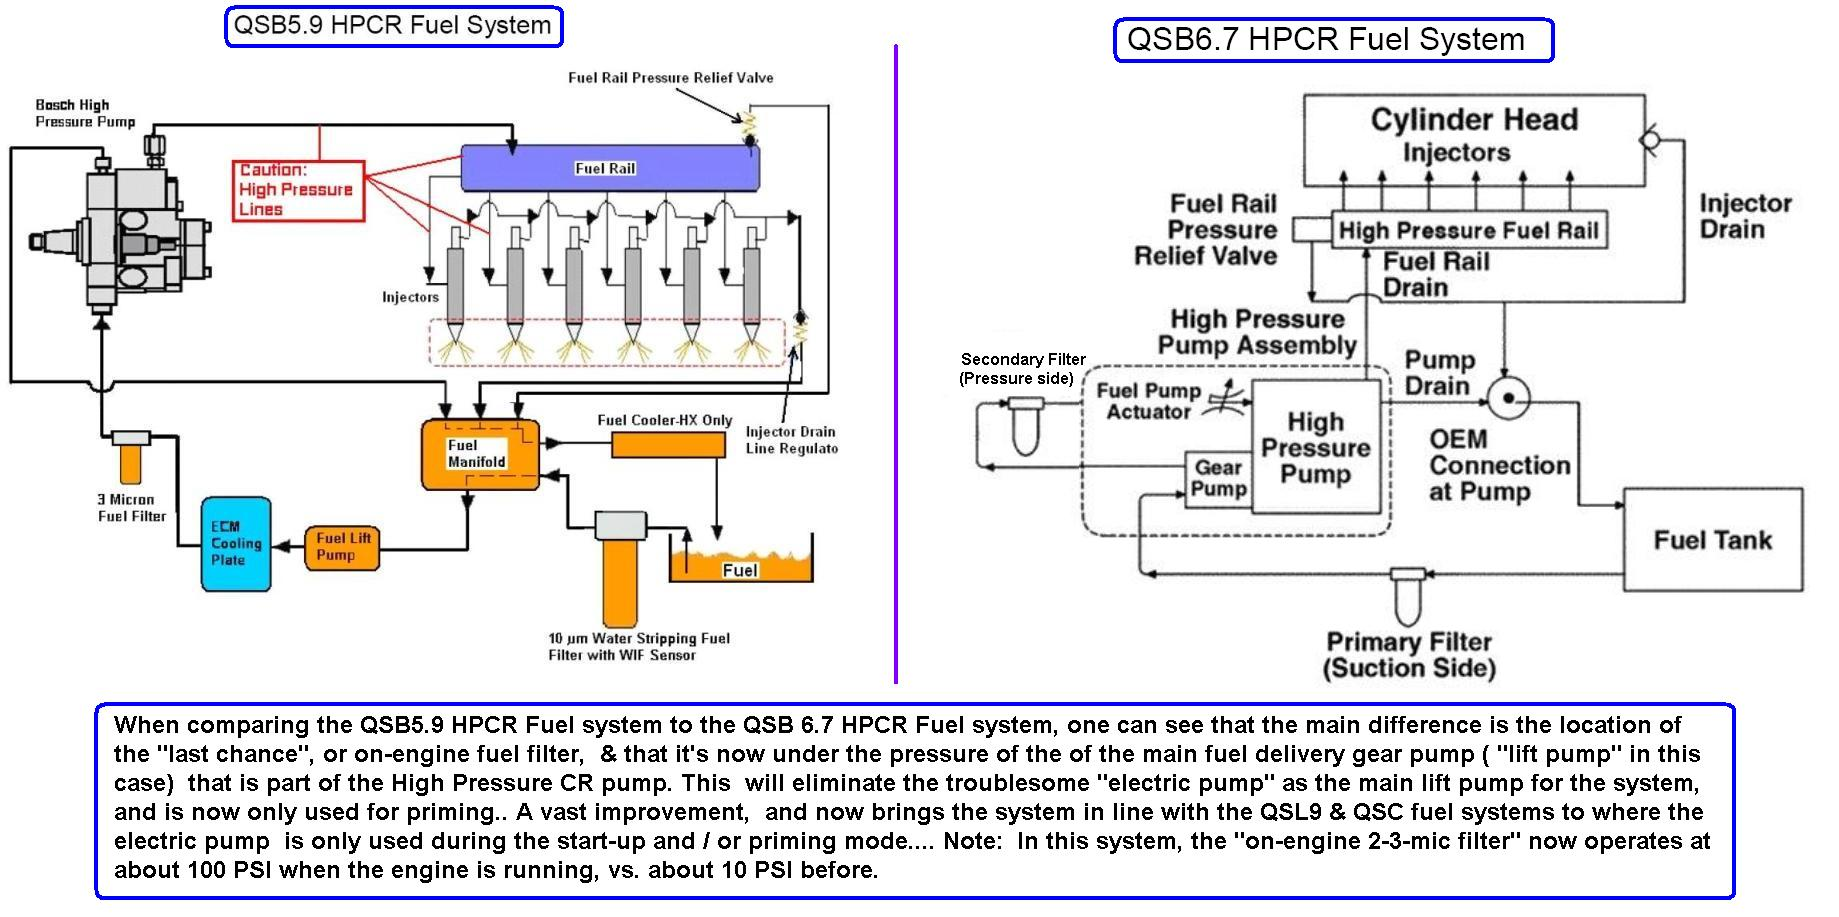 hight resolution of qsb6 7 wiring diagram wiring diagram detailed 3406c wiring diagram qsb5 9 vs qsb 6 7